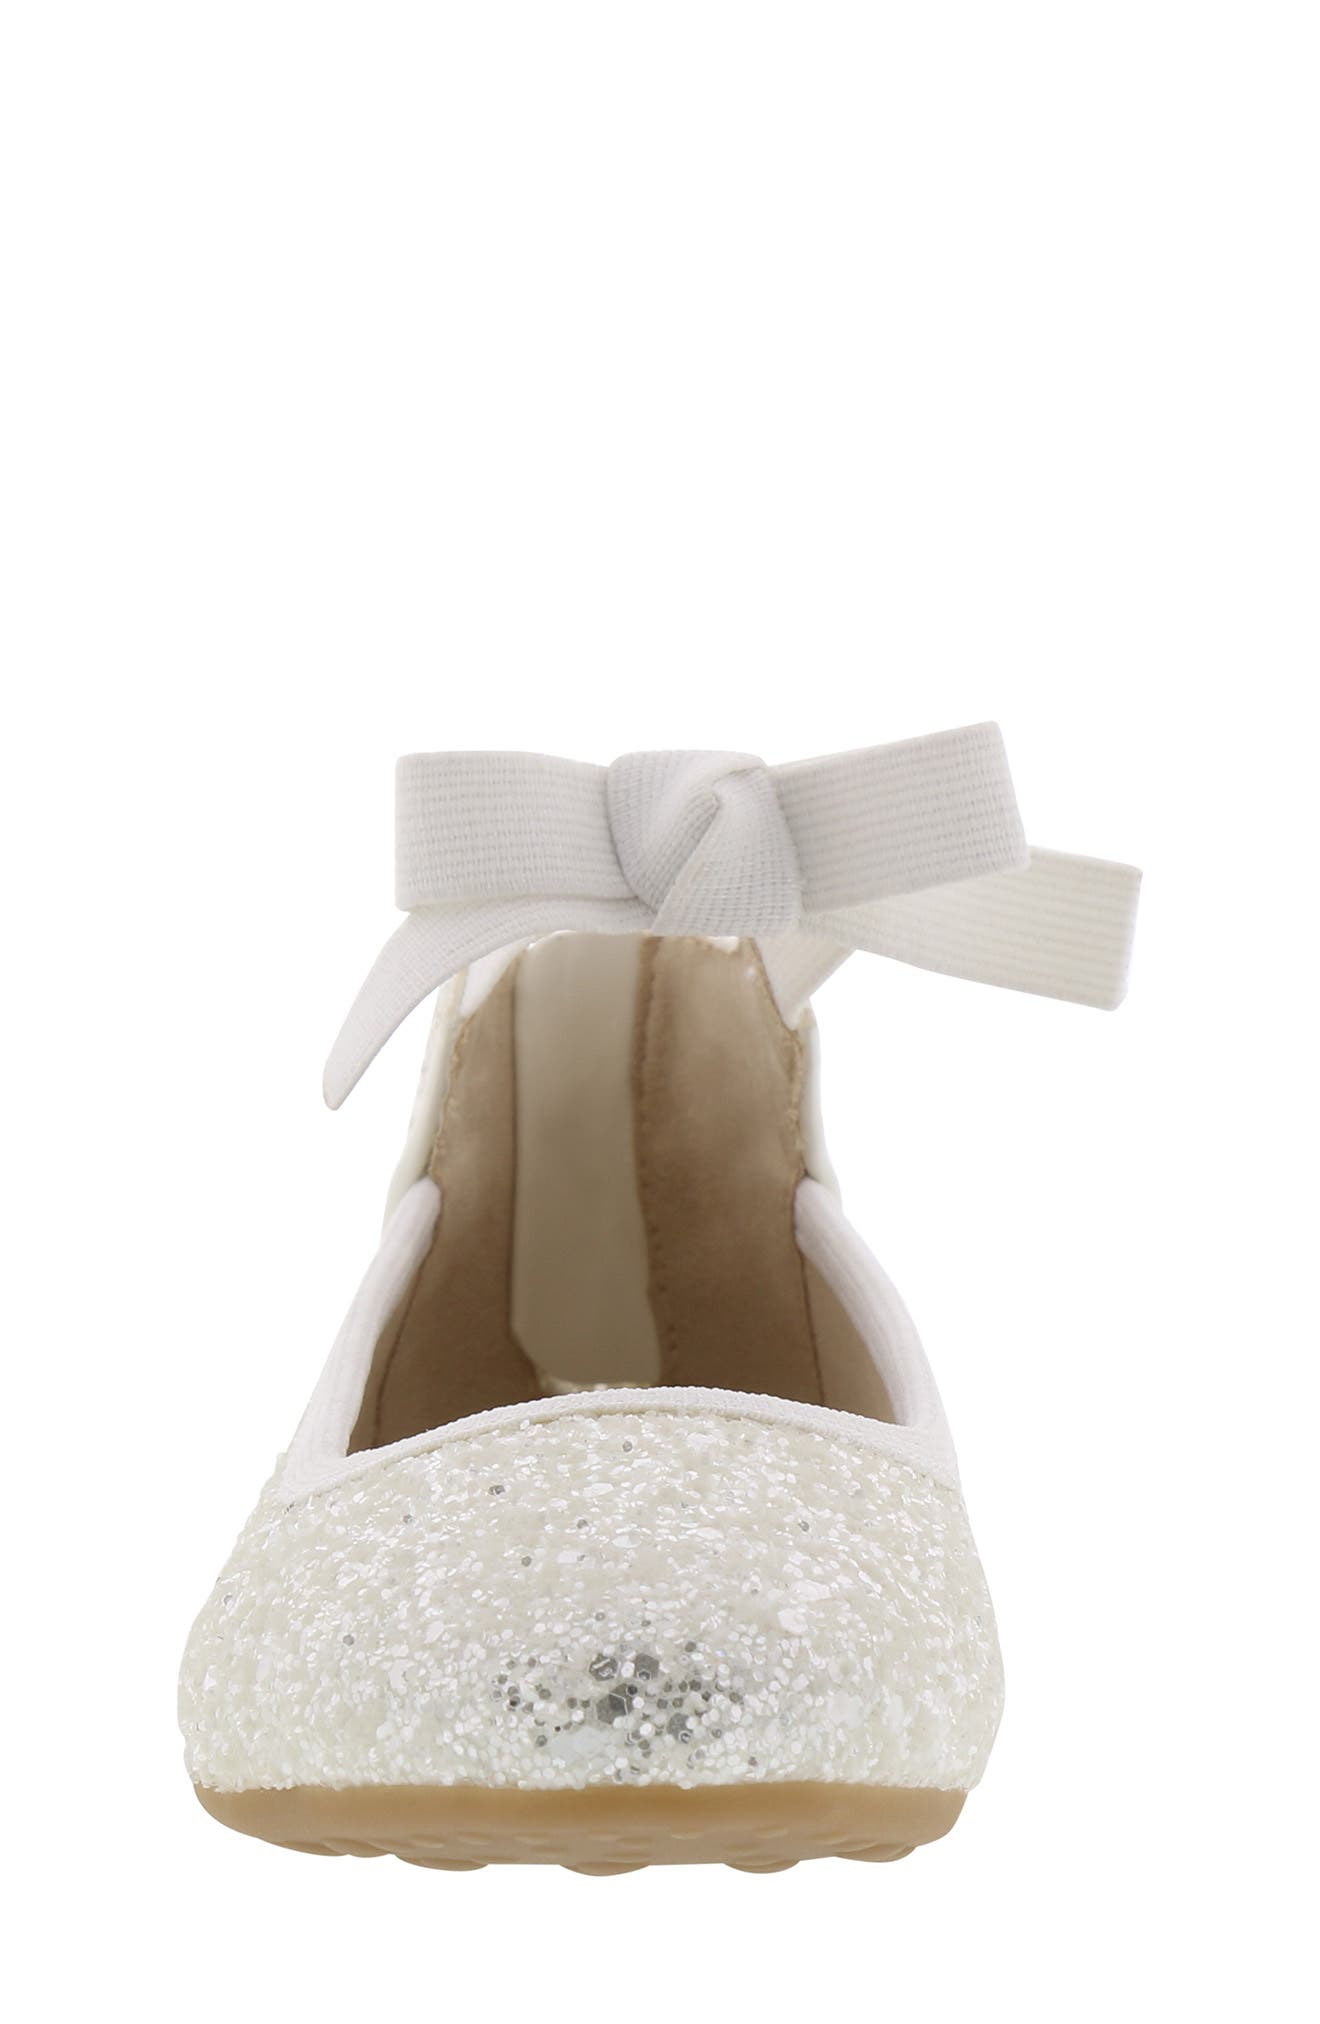 KENNETH COLE NEW YORK, Rose Bow Ballet Flat, Alternate thumbnail 4, color, WHITE SUGAR GLITTER